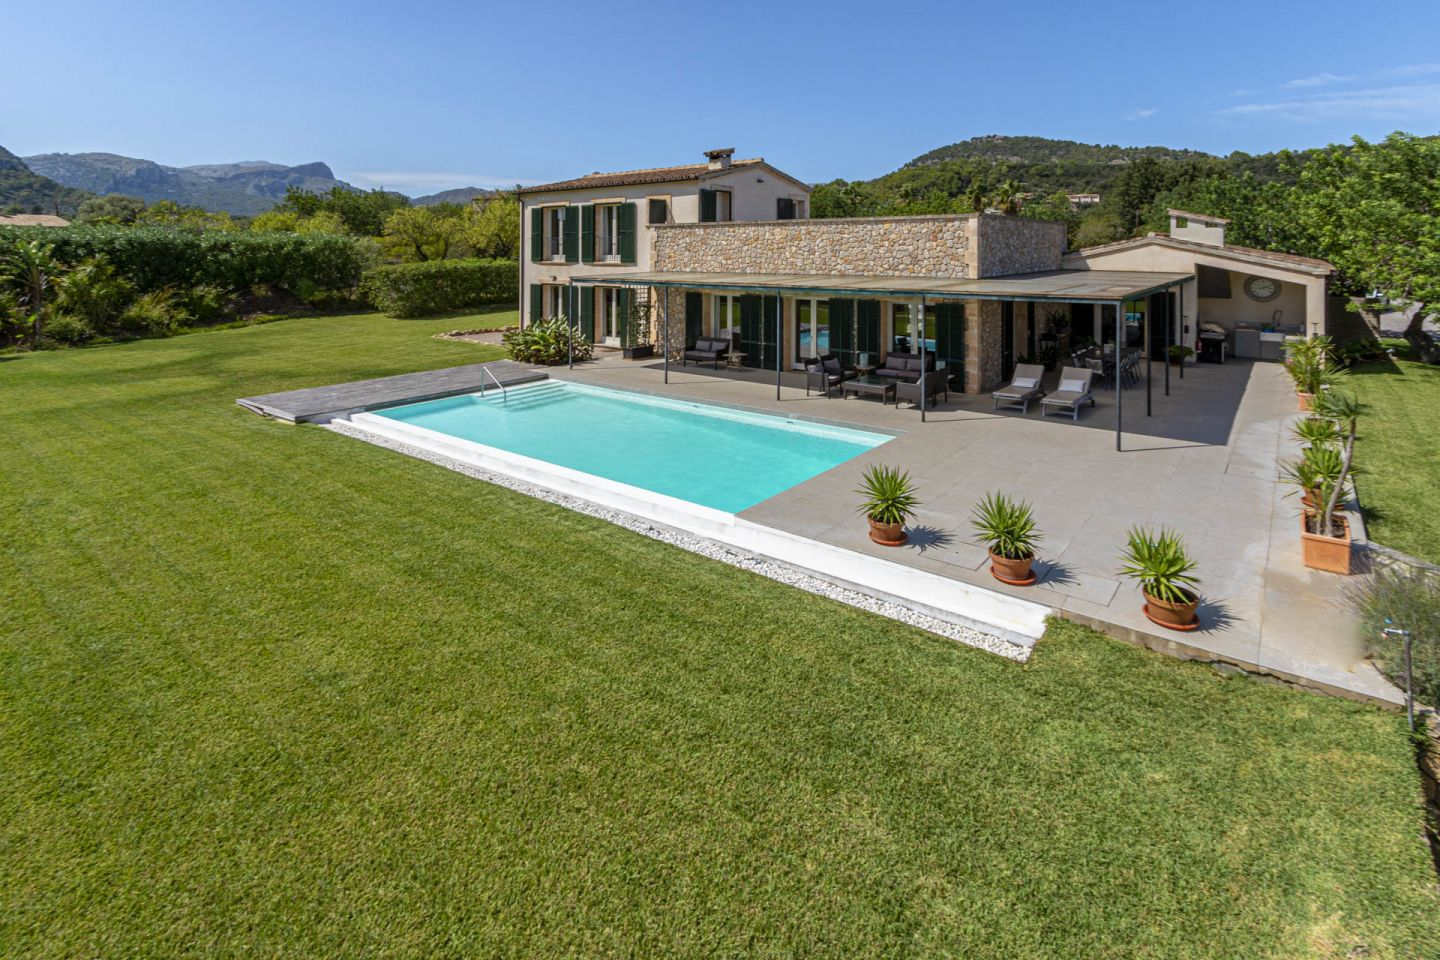 4 Bed Countryside House for sale in POLLENSA 0